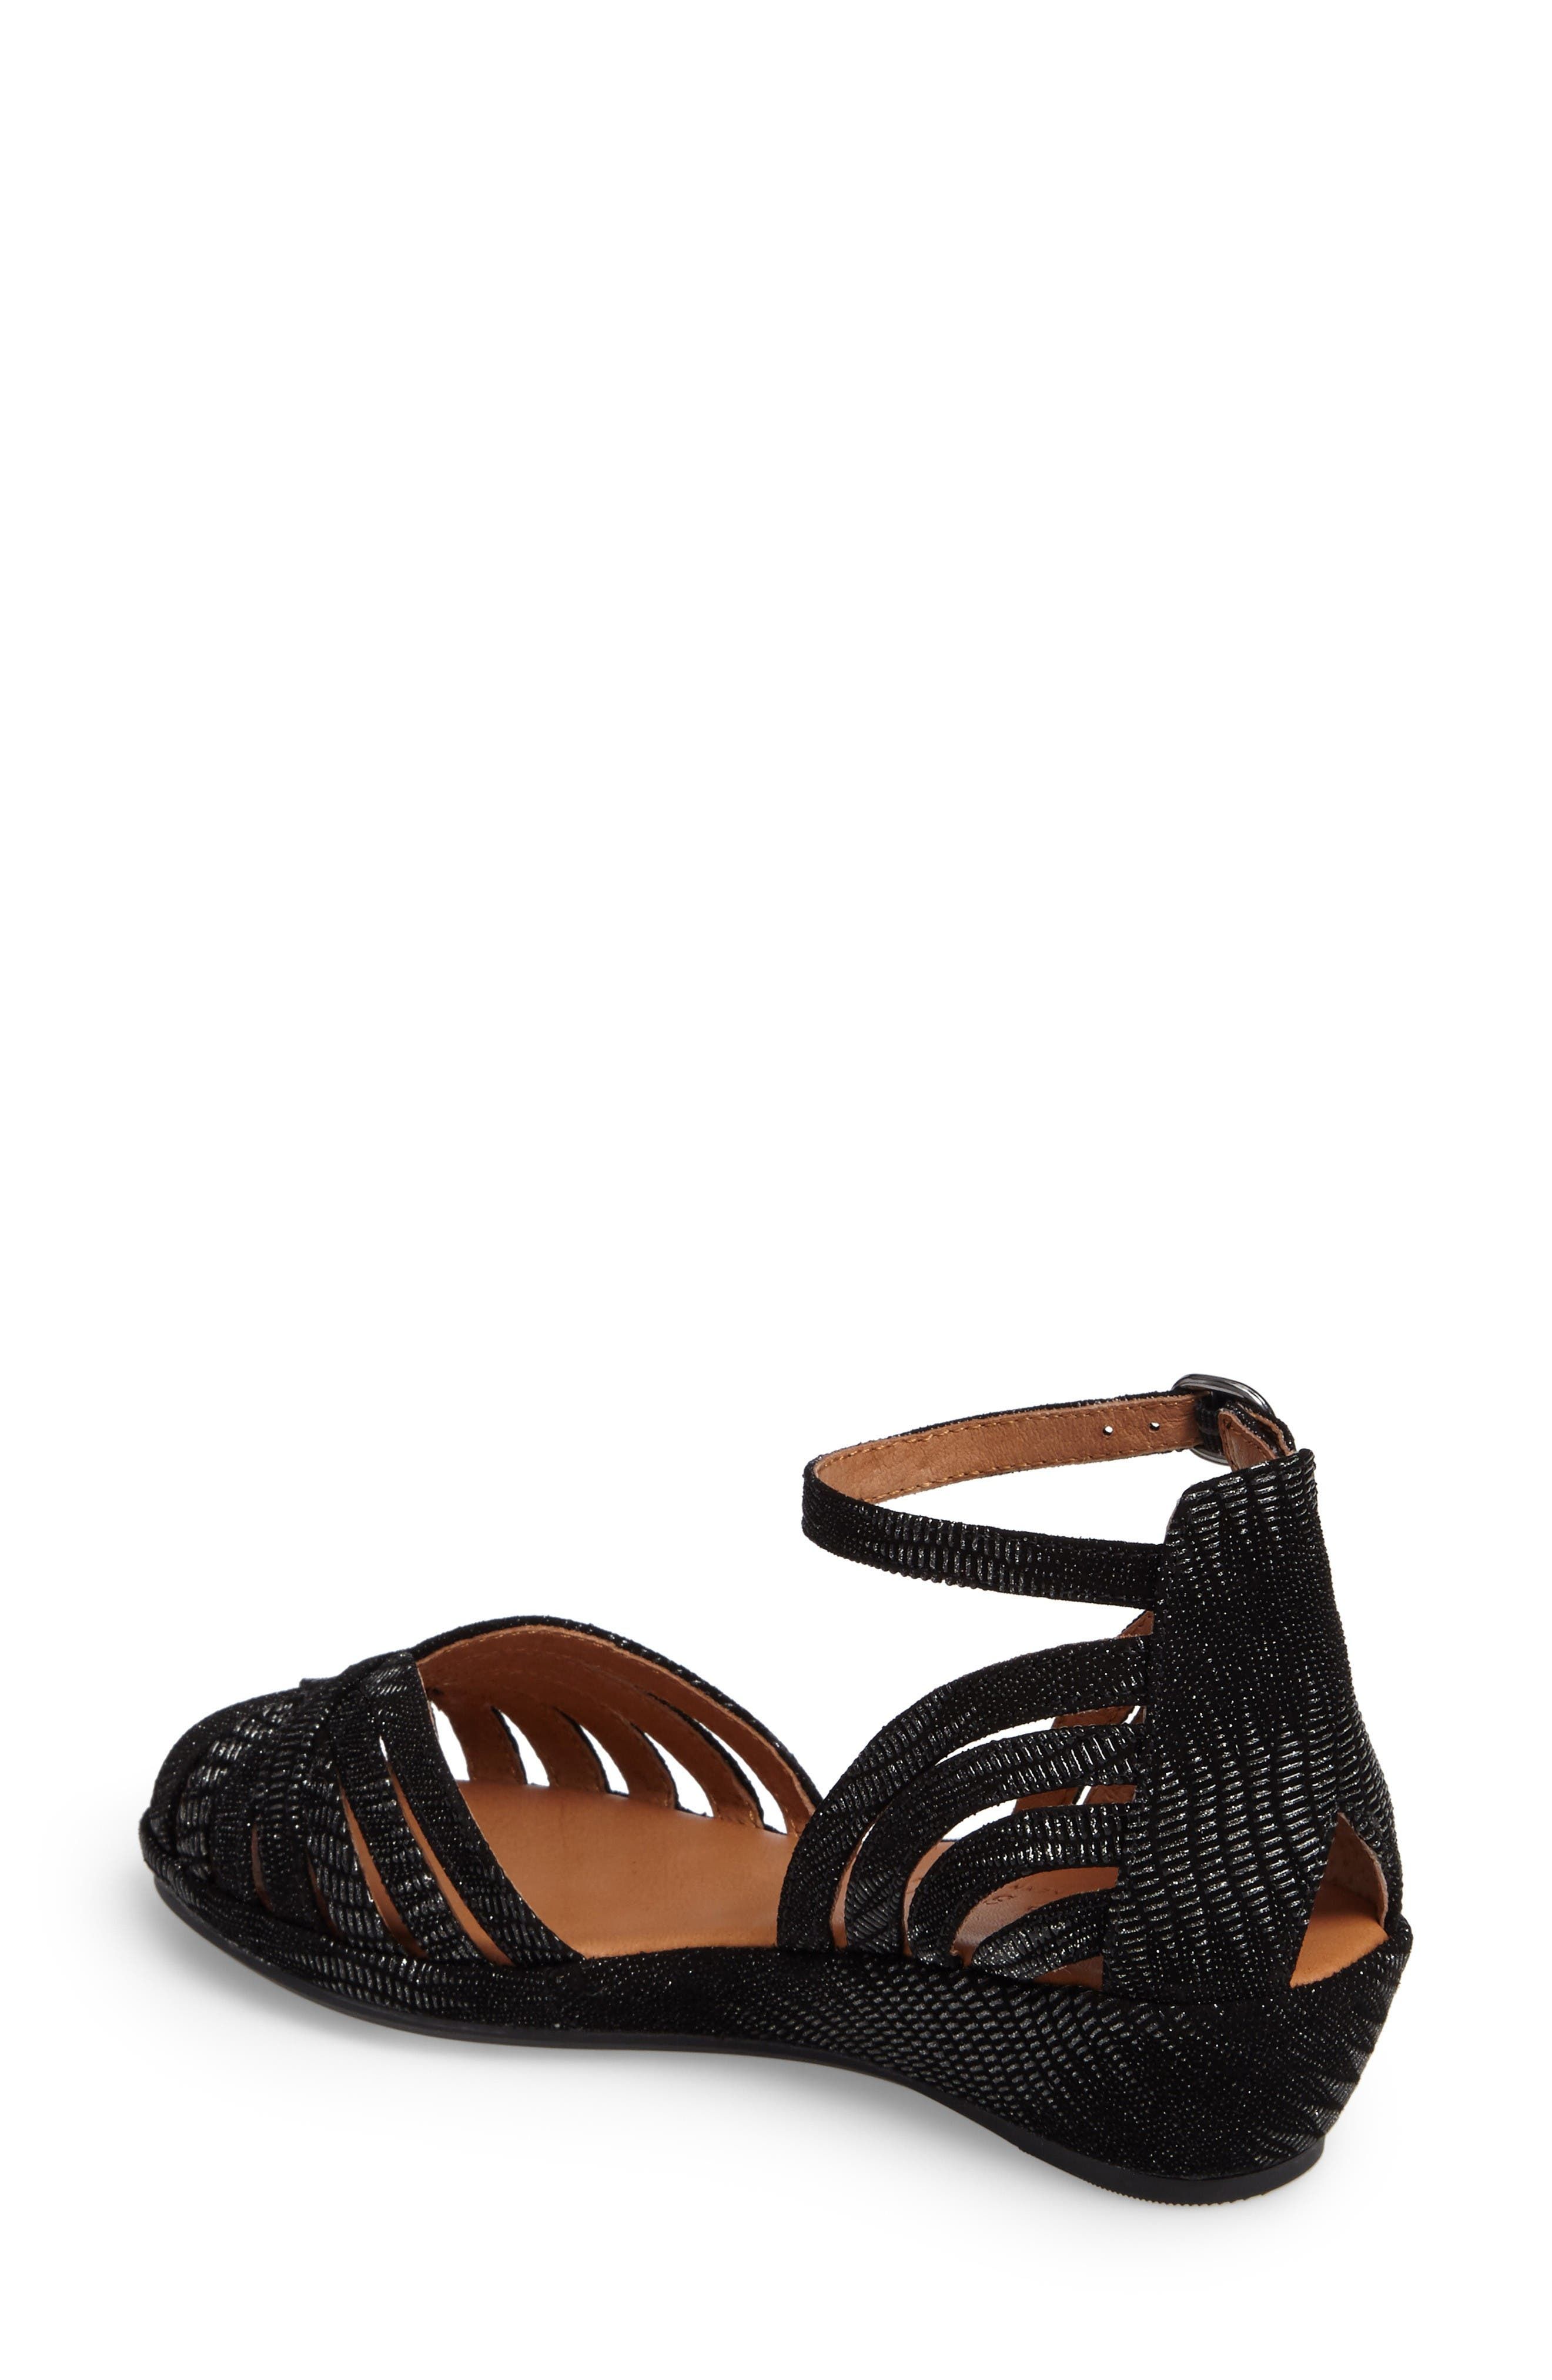 by Kenneth Cole 'Leah' Peep Toe Wedge Sandal,                             Alternate thumbnail 2, color,                             Black/ Black Leather